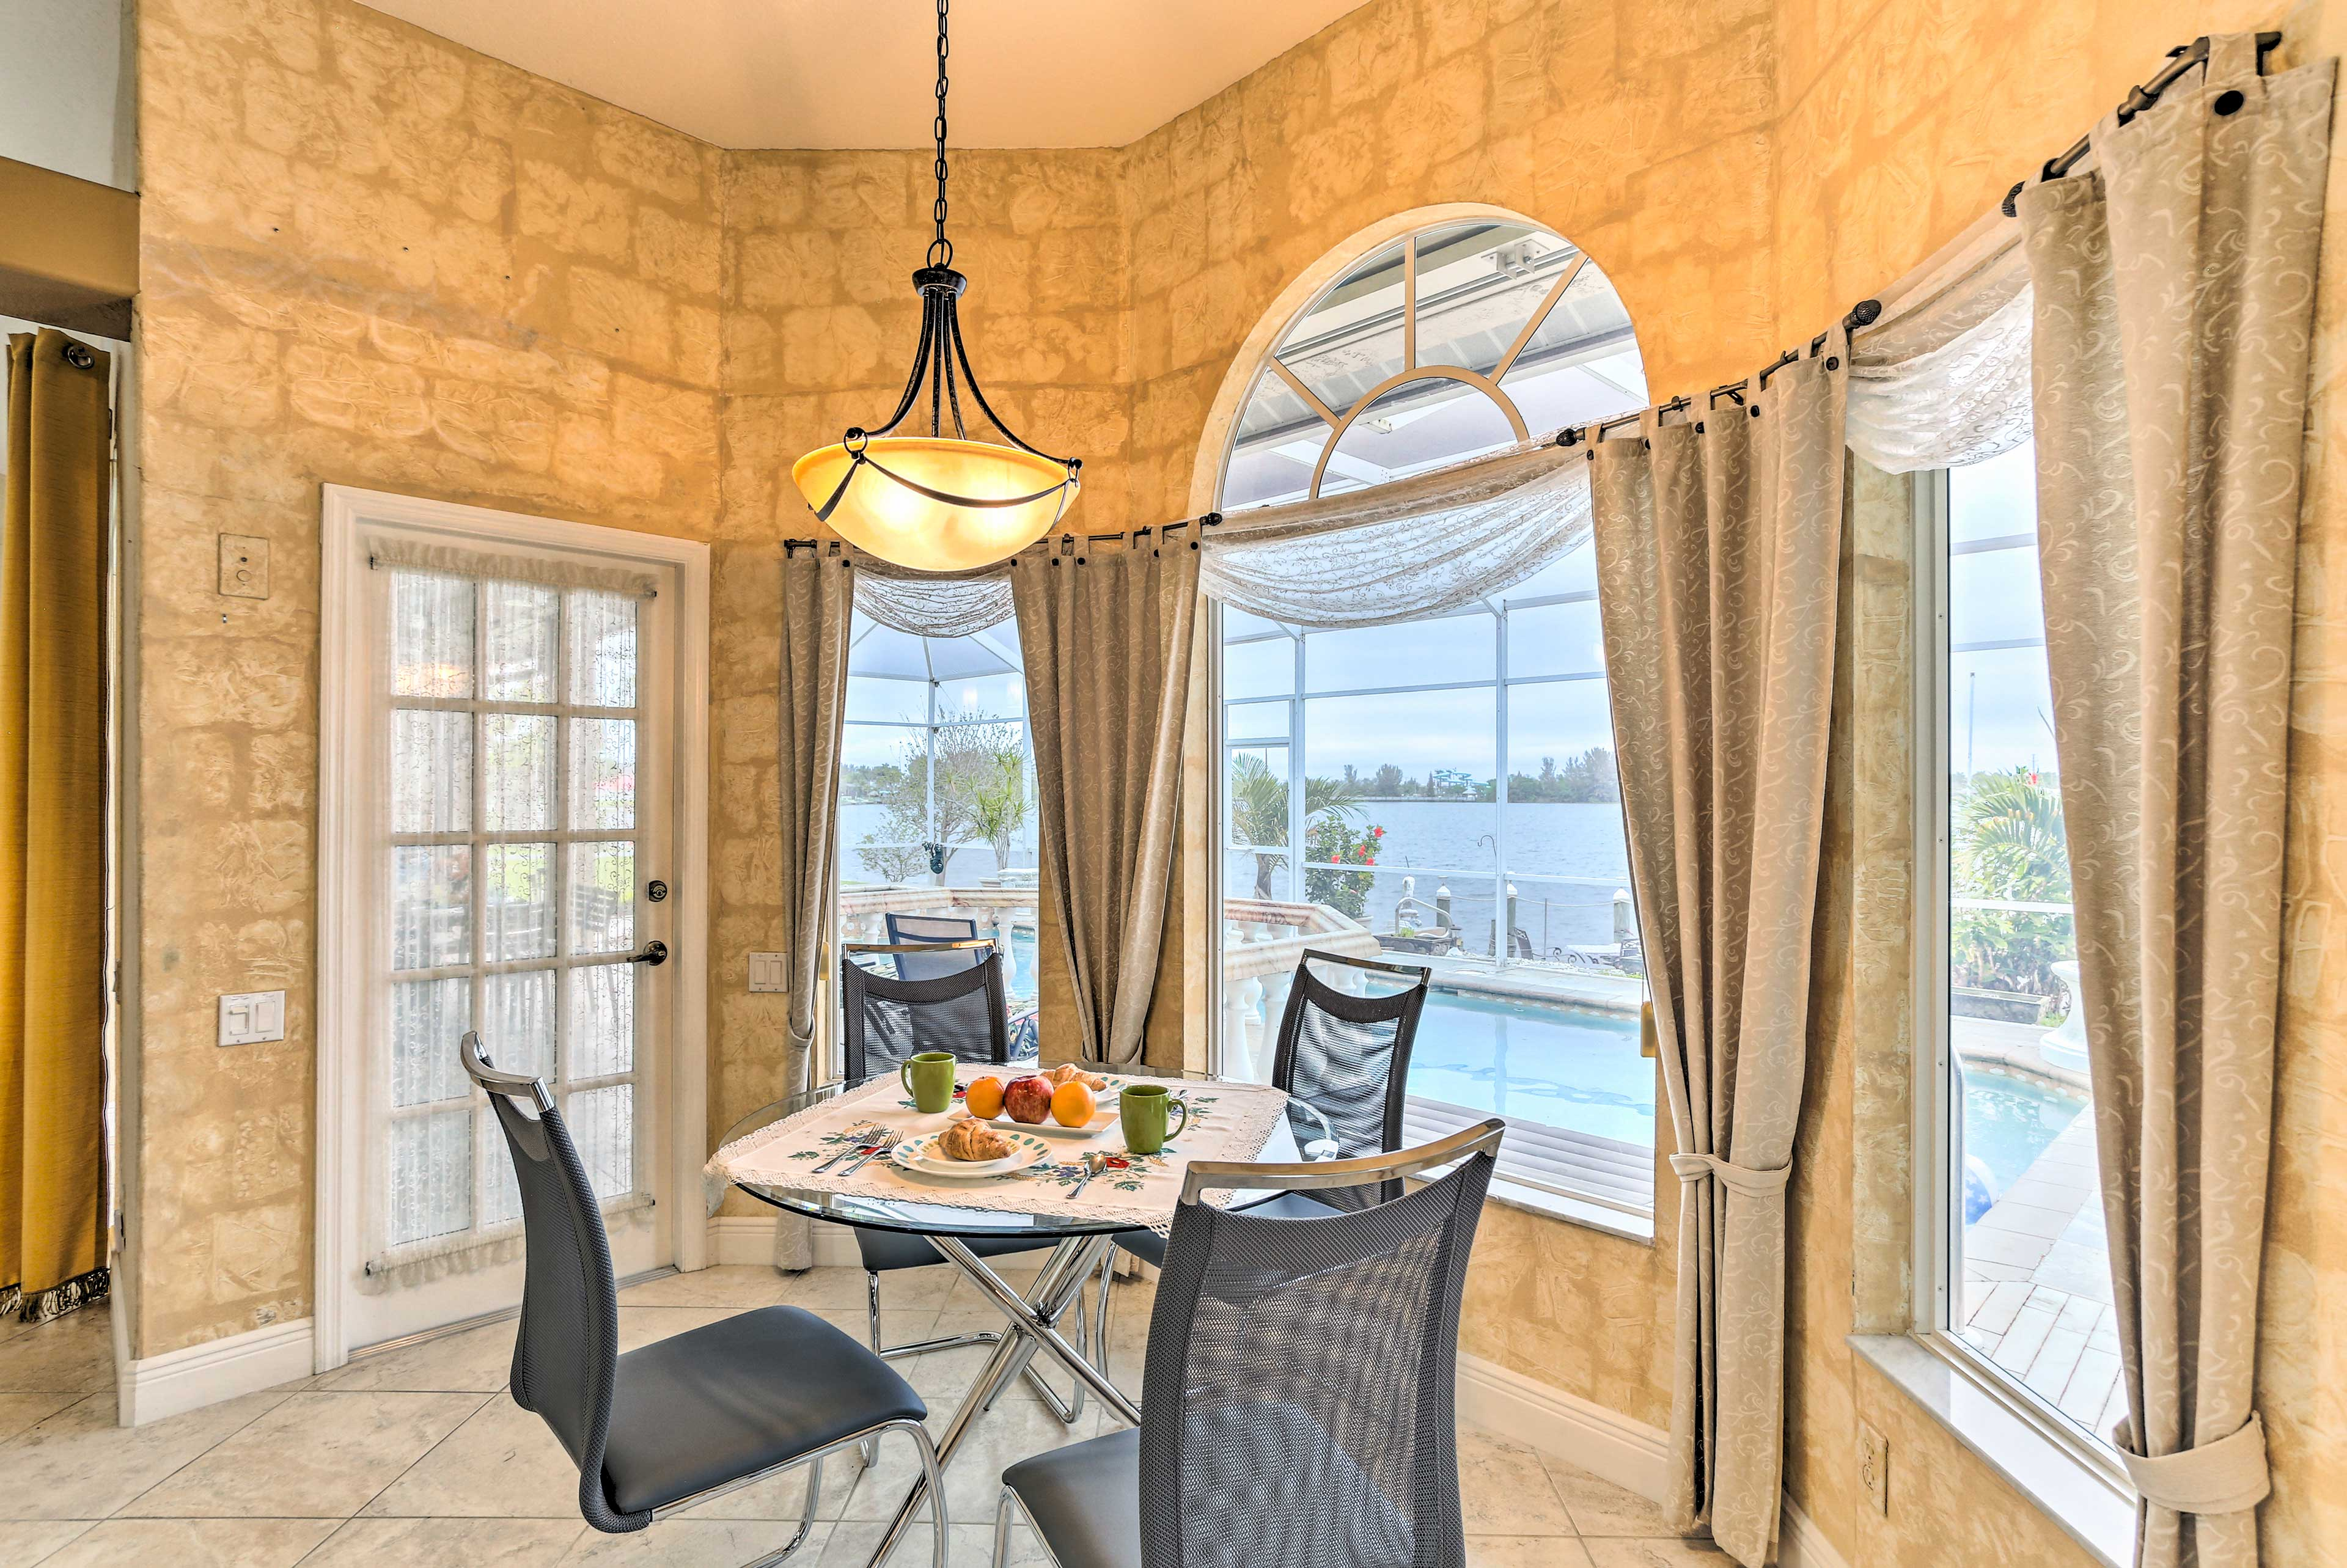 You won't miss out on the view, even from inside this 3-bedroom Cape Coral home.